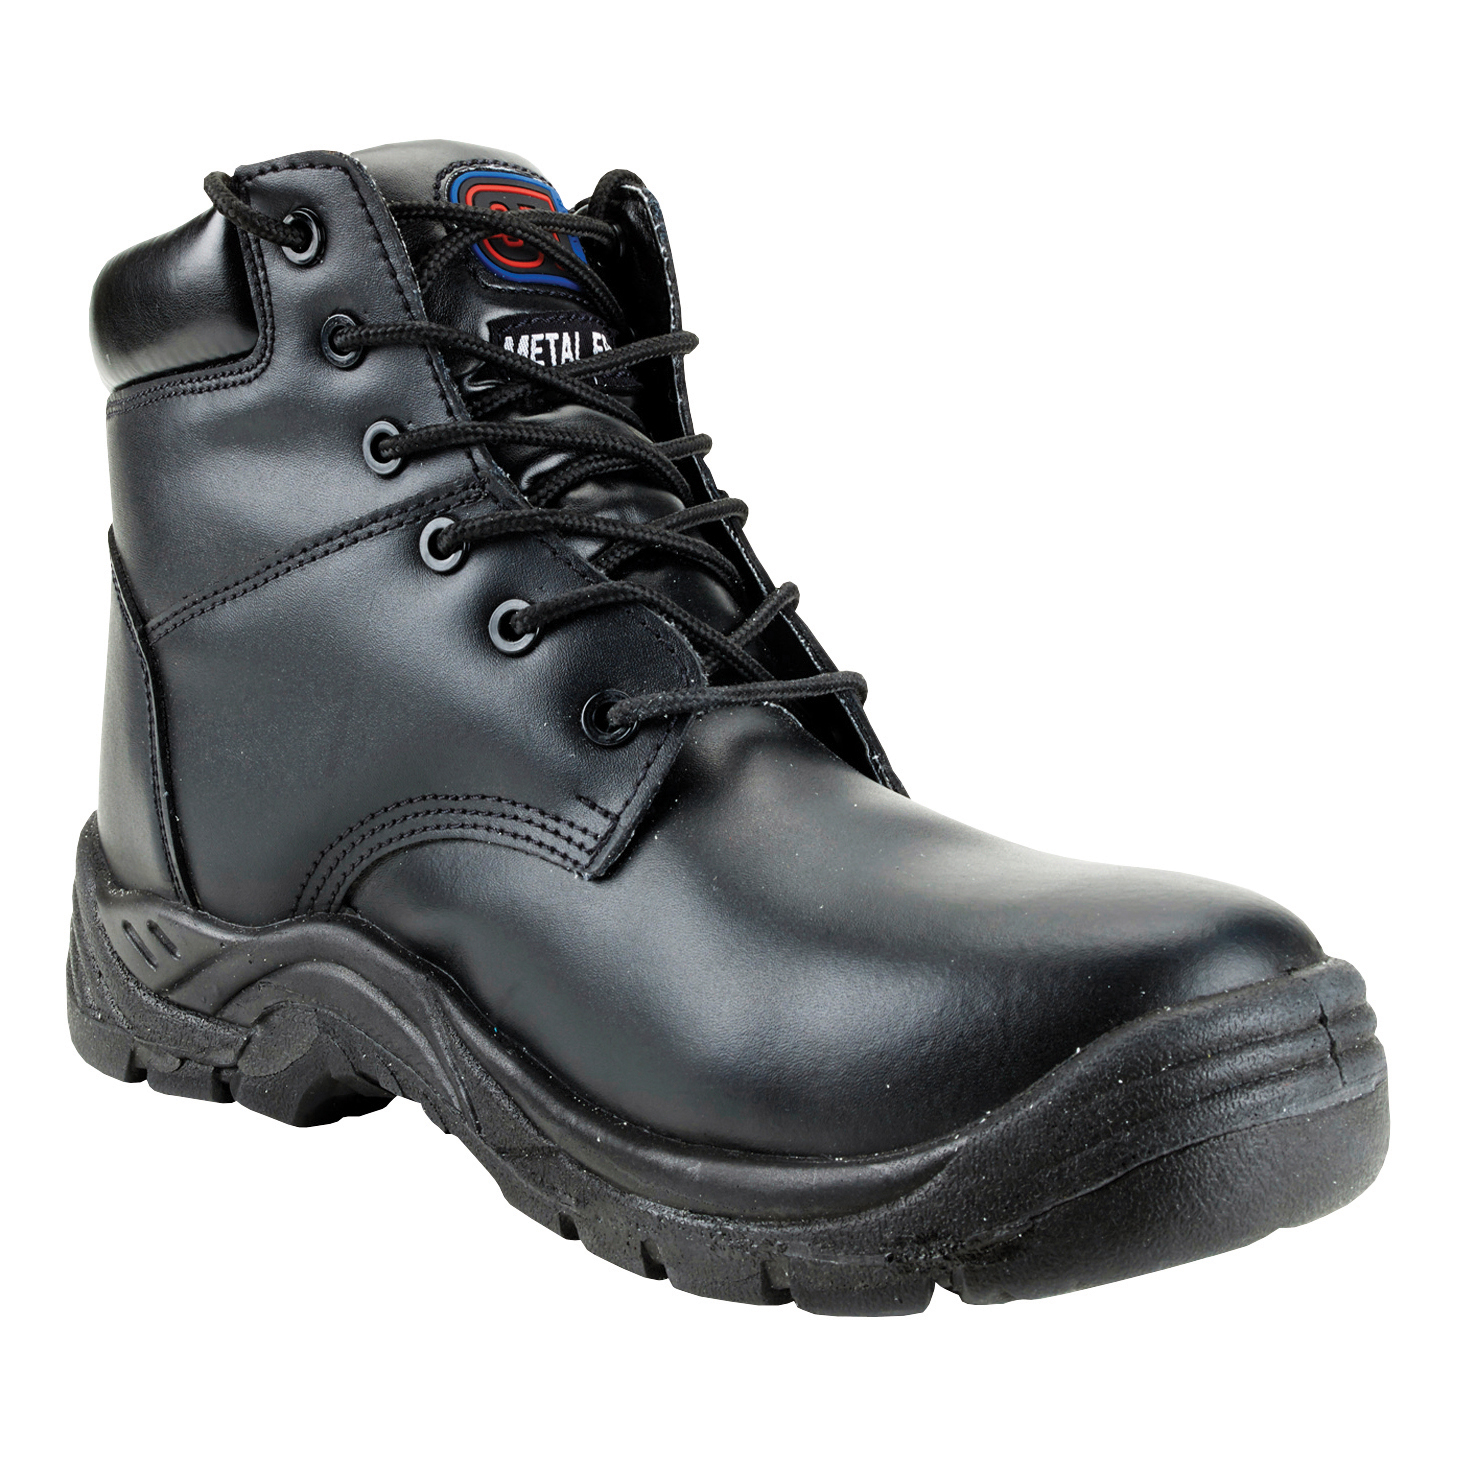 Toelite Boot Leather Comp Midsole Safety Toecap Metal Free Size 10 Black Approx 3 Day Leadtime